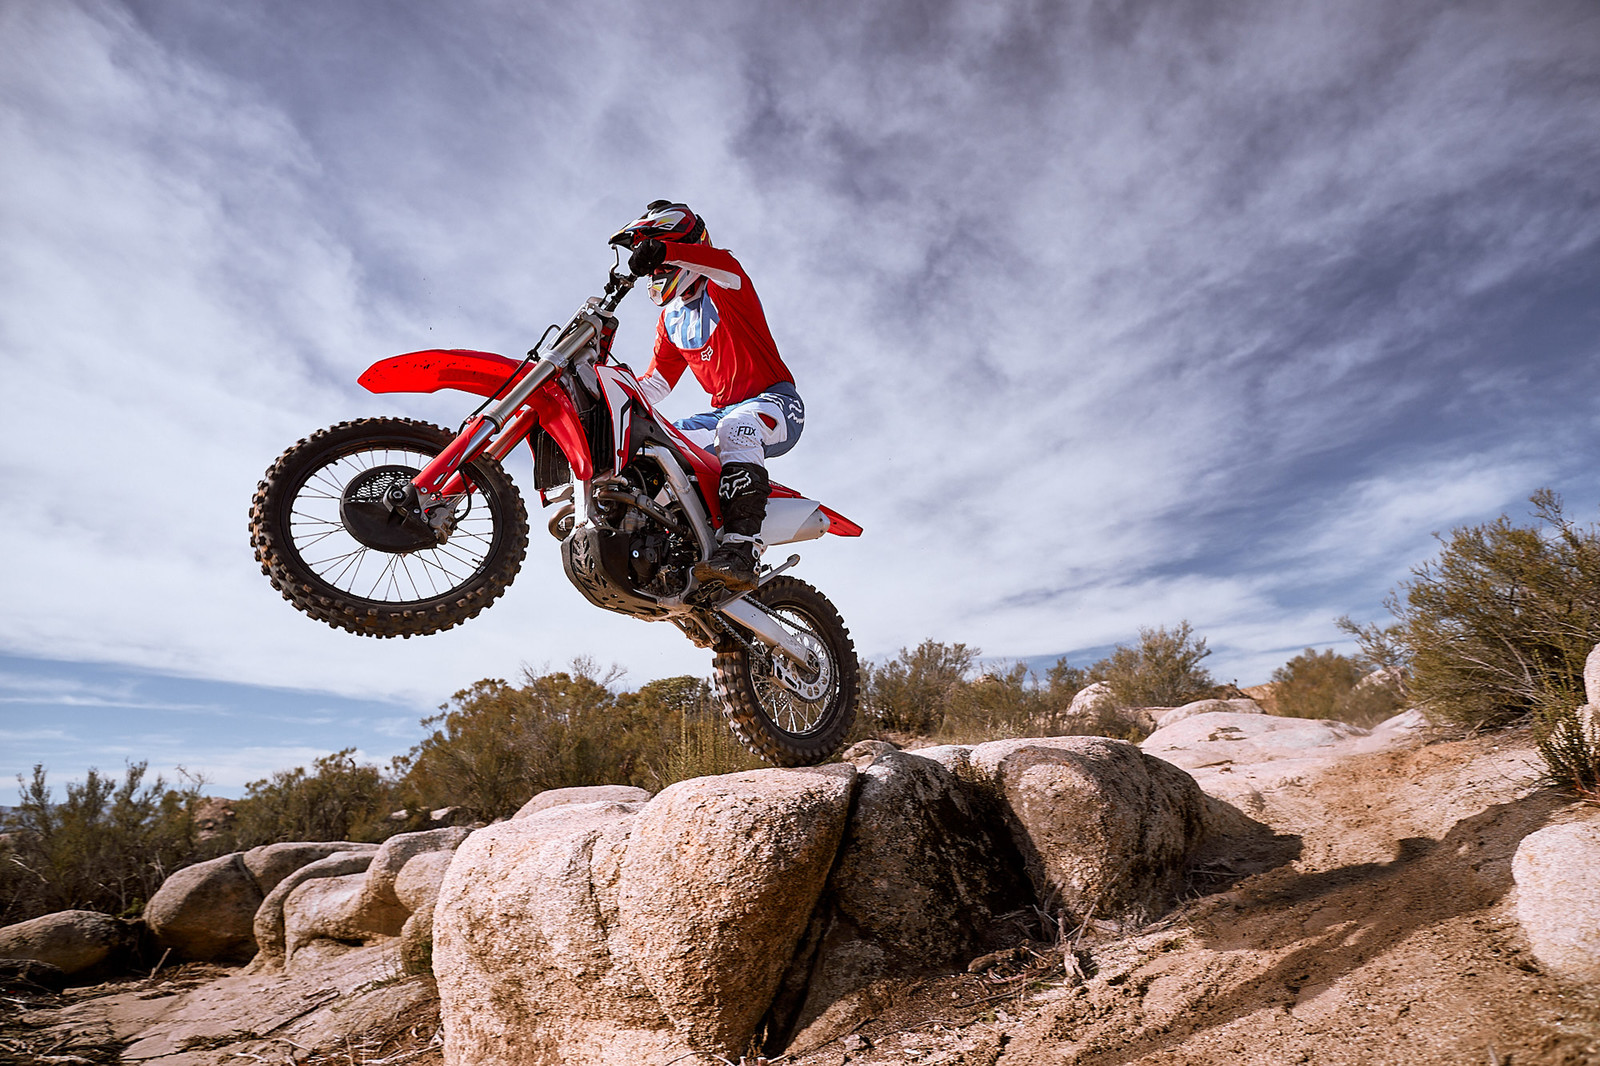 2019 honda crf250rx reviews comparisons specs motocross dirt rh m vitalmx com